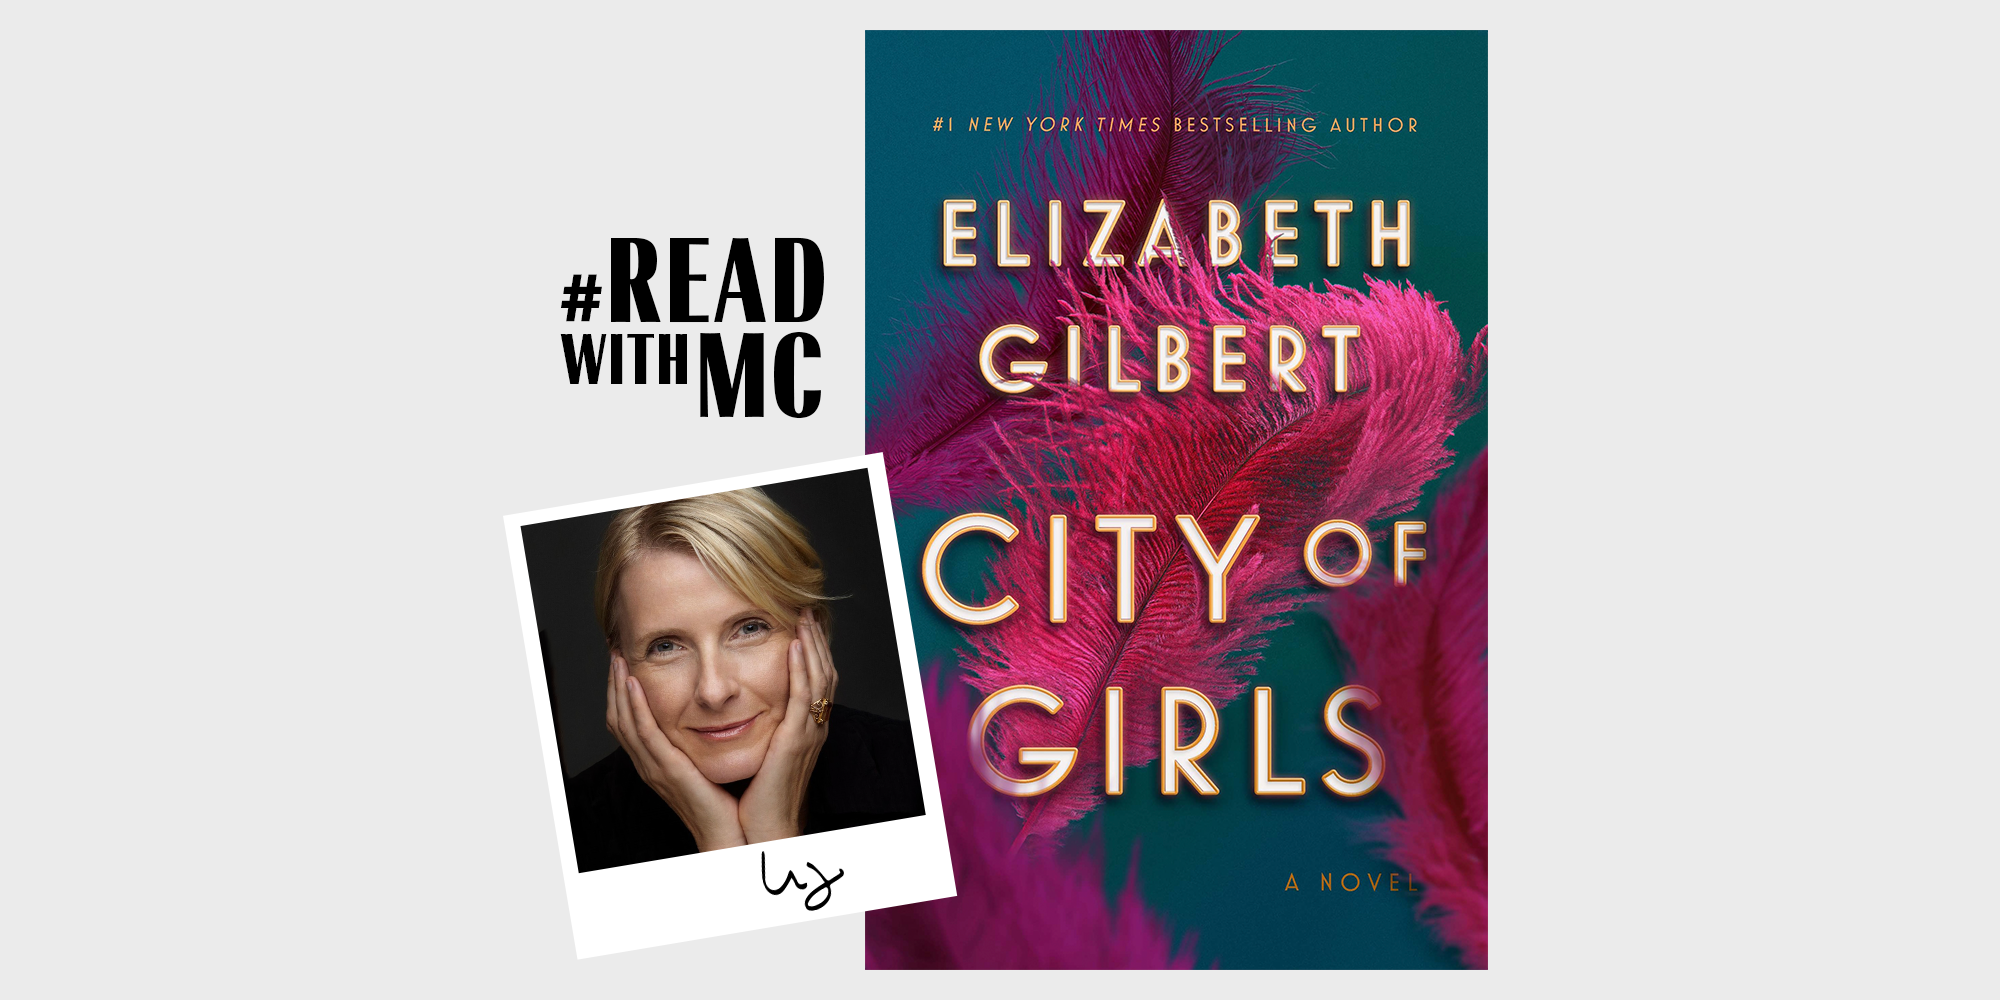 Elizabeth Gilbert's 'City of Girls' Will Change How We Think About Sex—And Women's Bodies